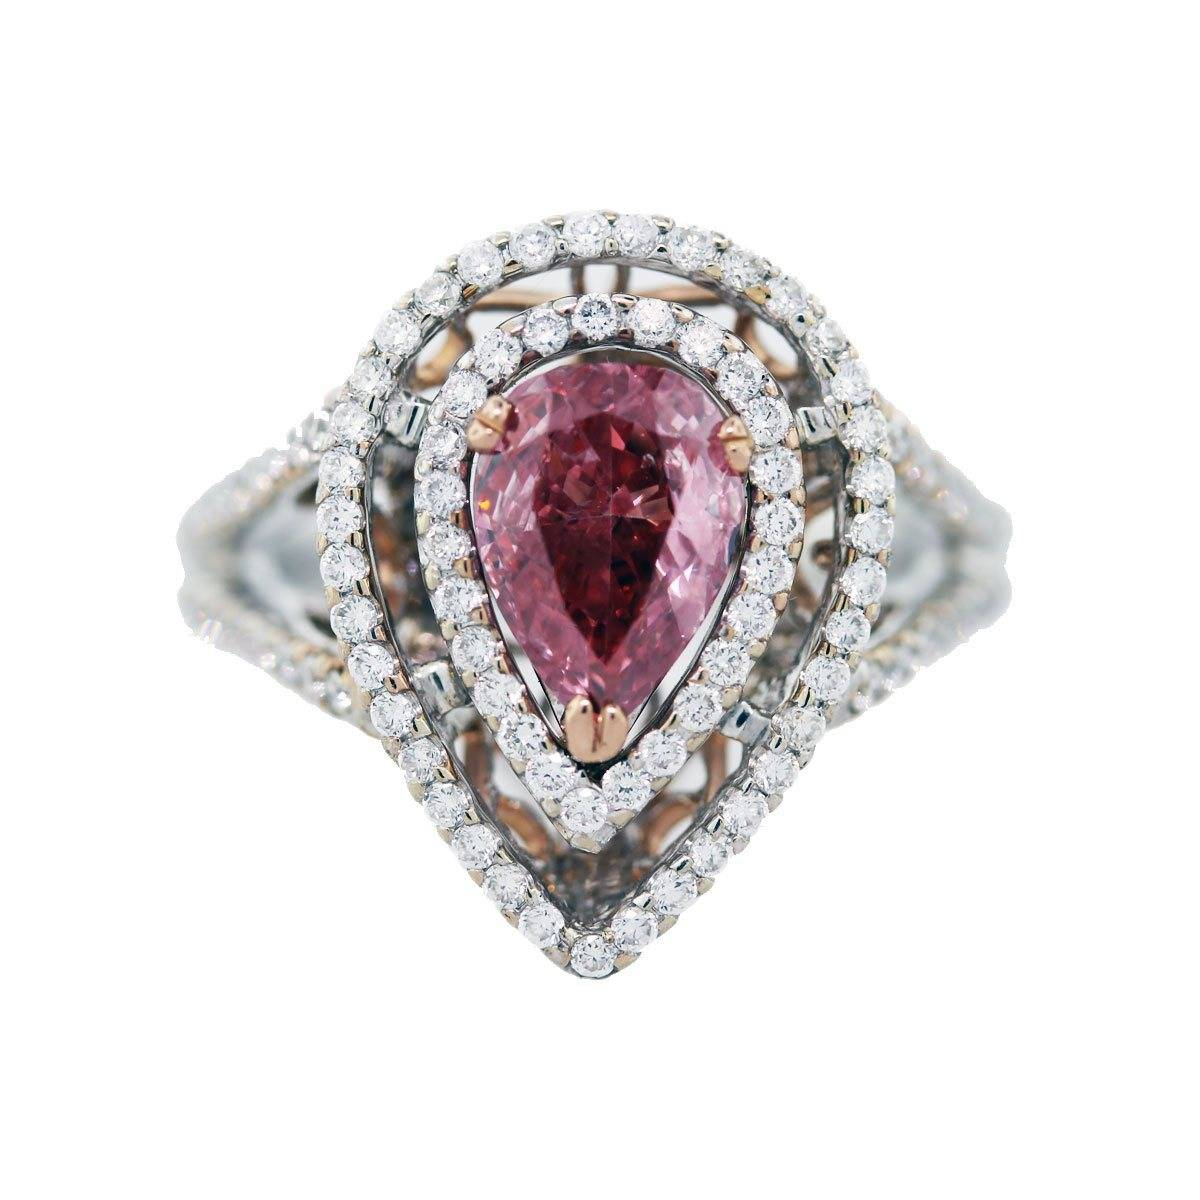 1 carat pink diamond engagement ring